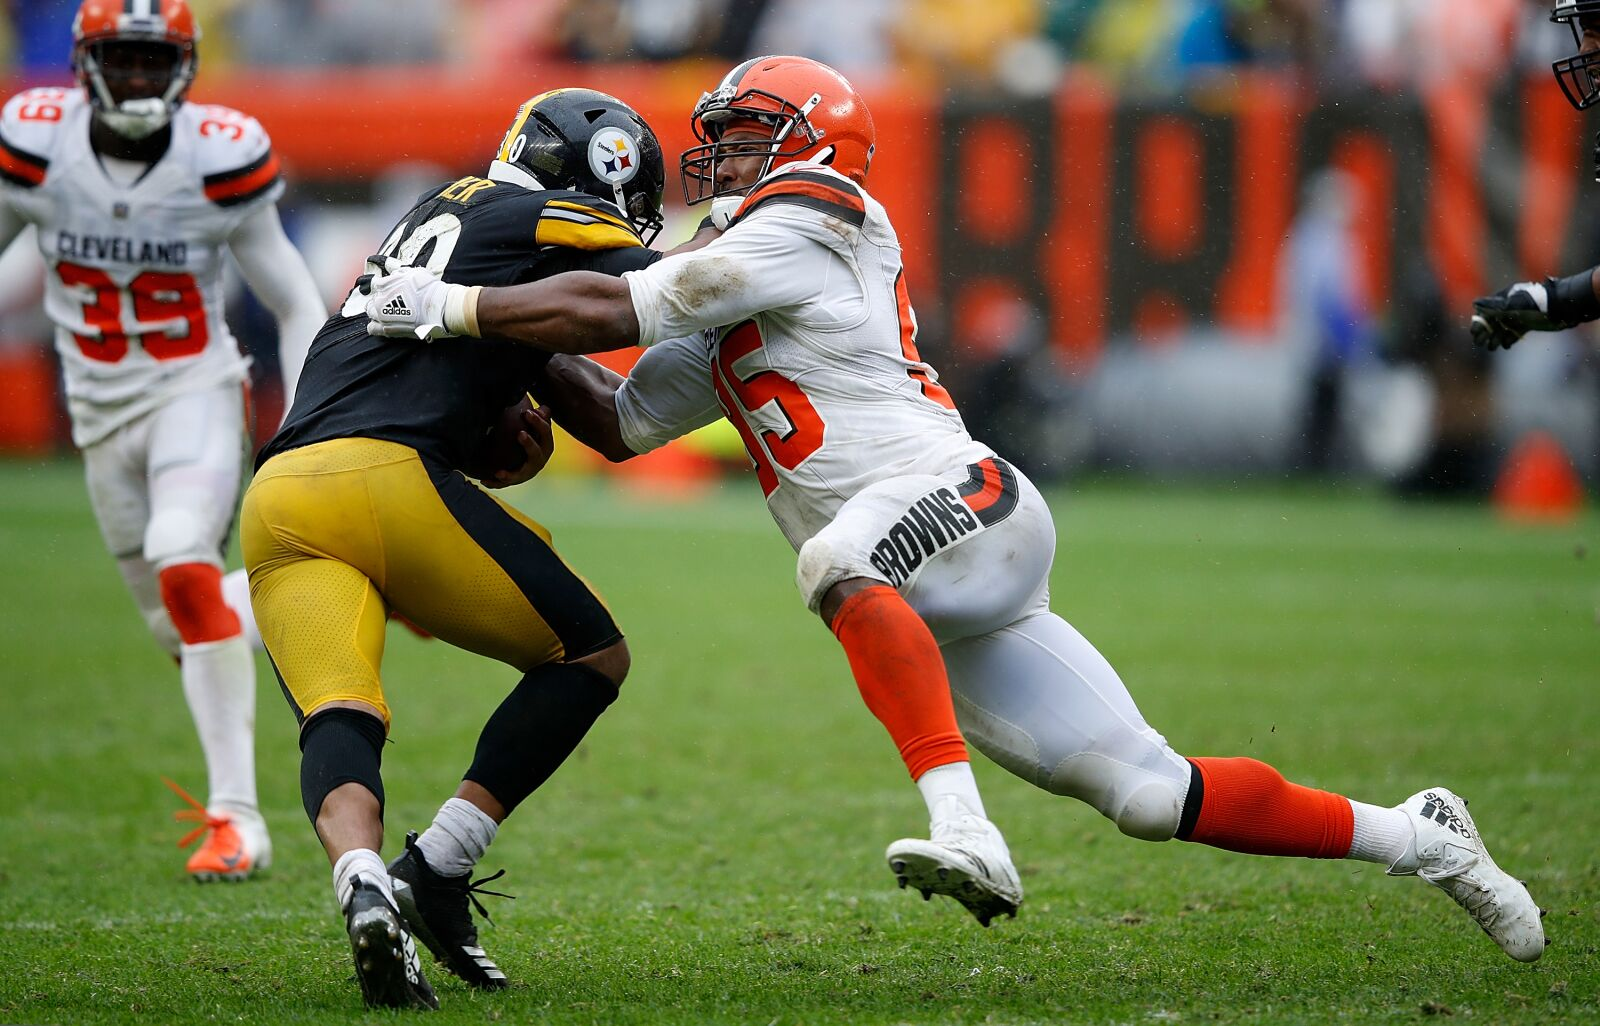 Cleveland Browns: Myles Garrett a major Defensive Player of the Year threat